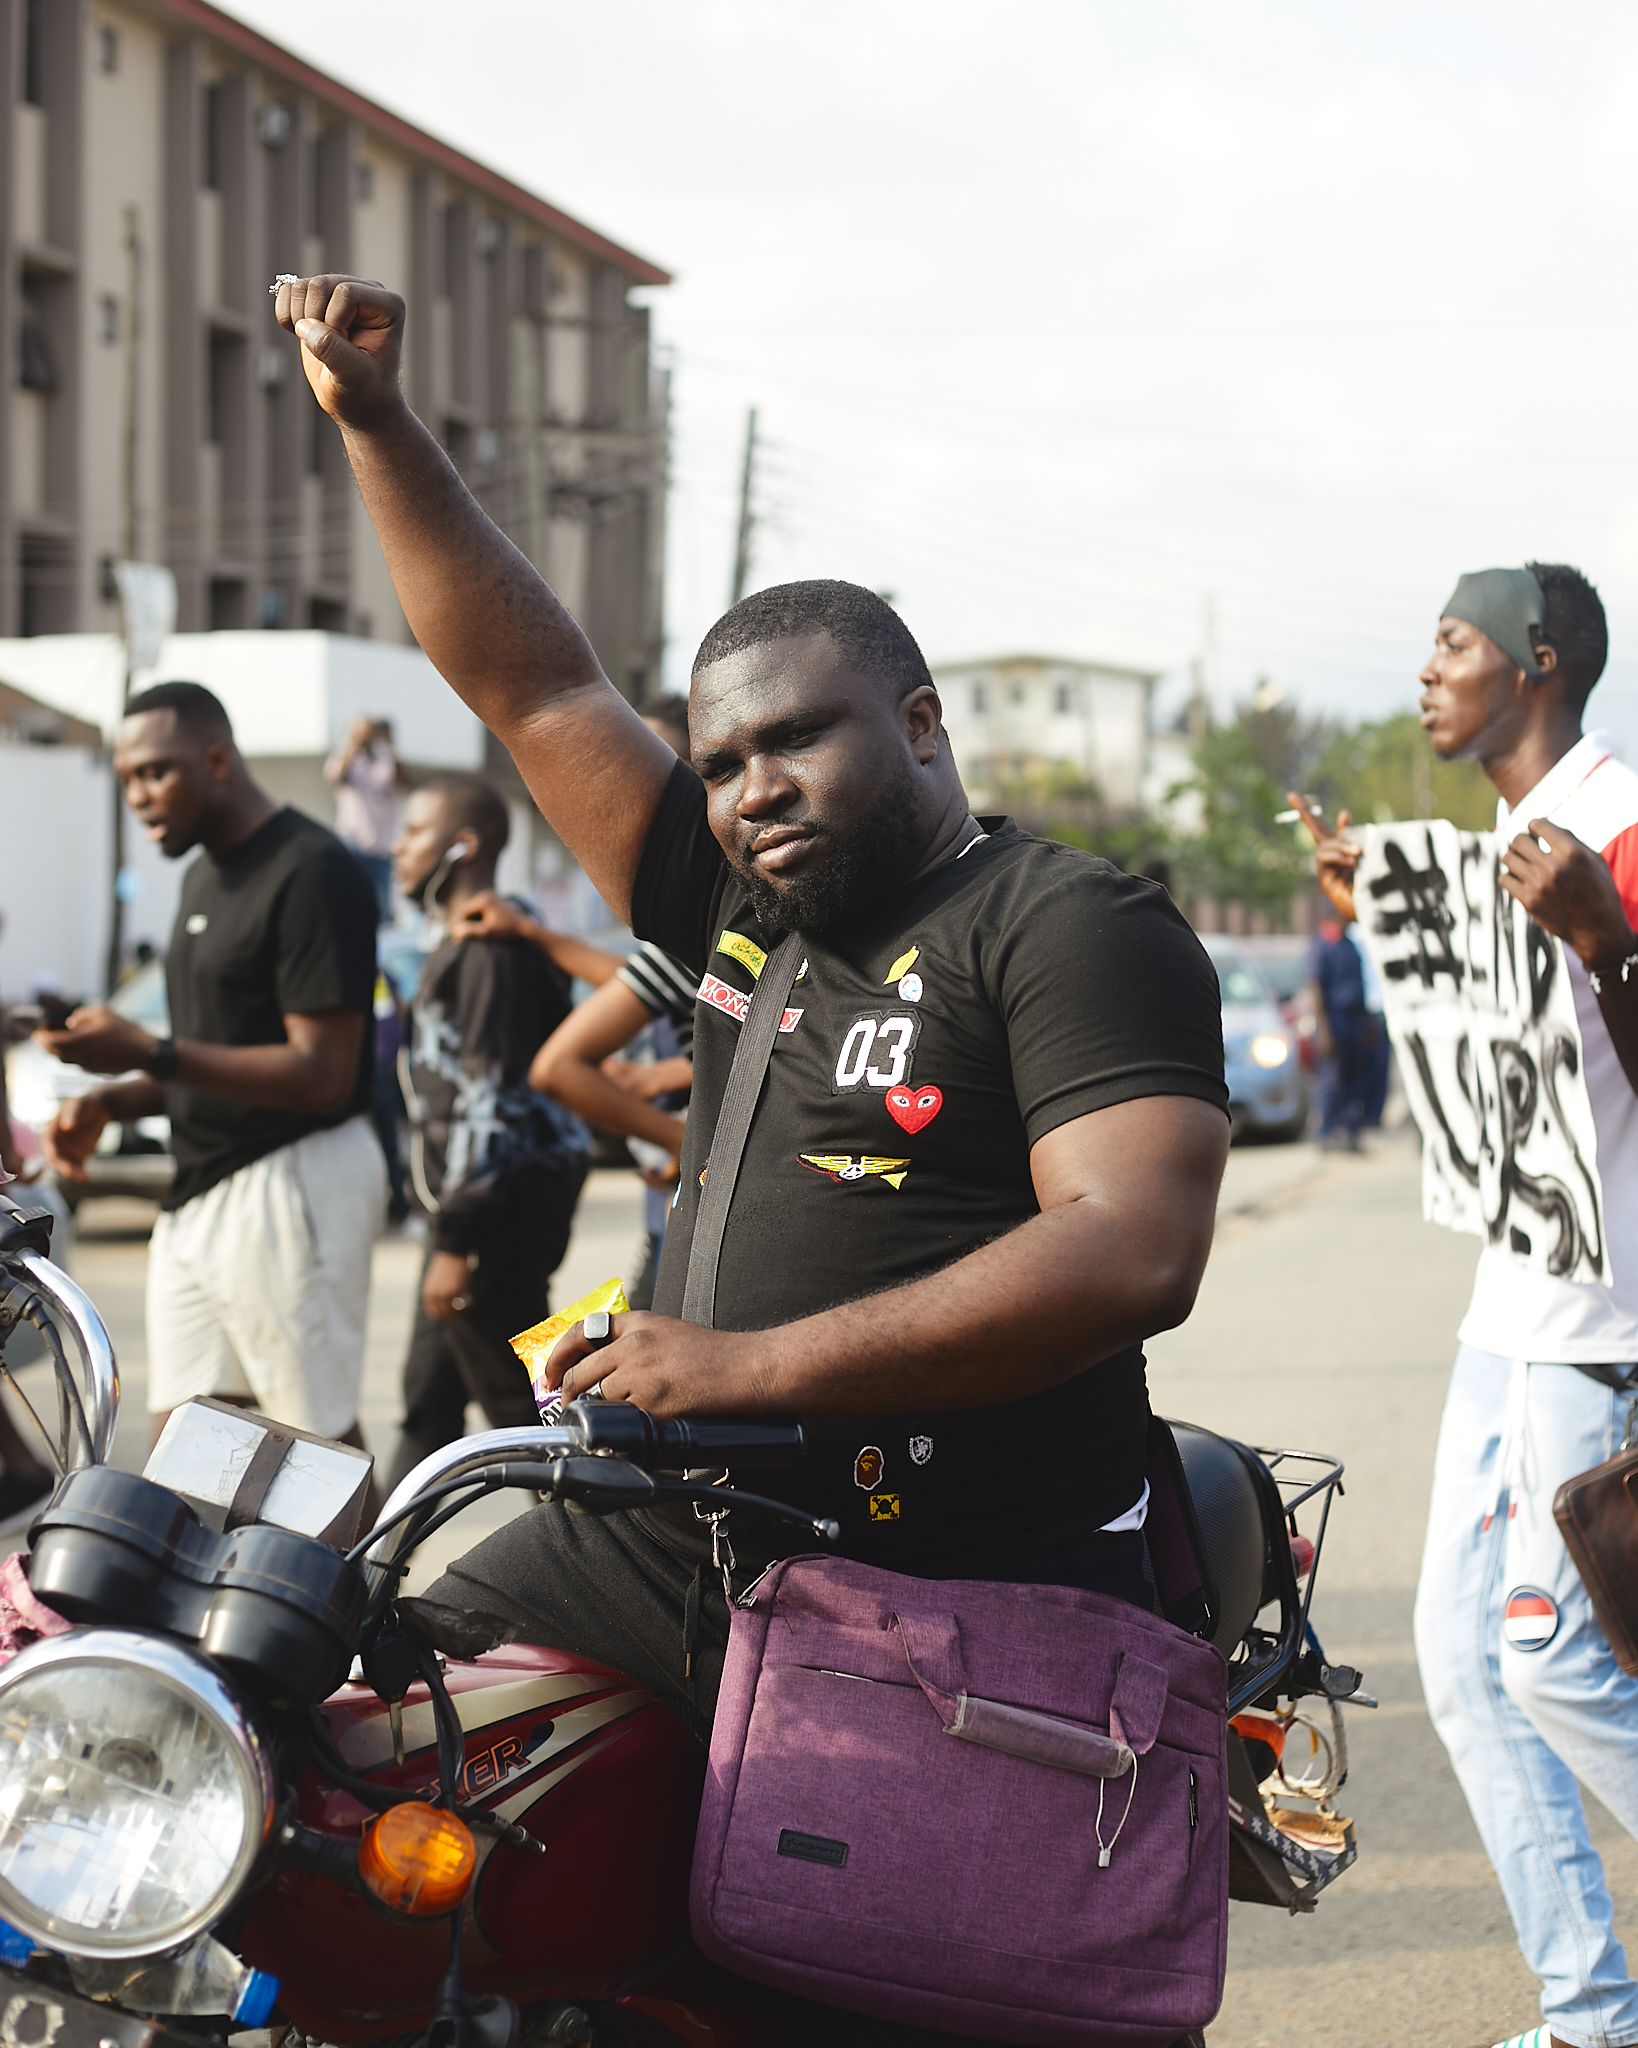 Protester on motorbike at anti-SARS protest in Lagos